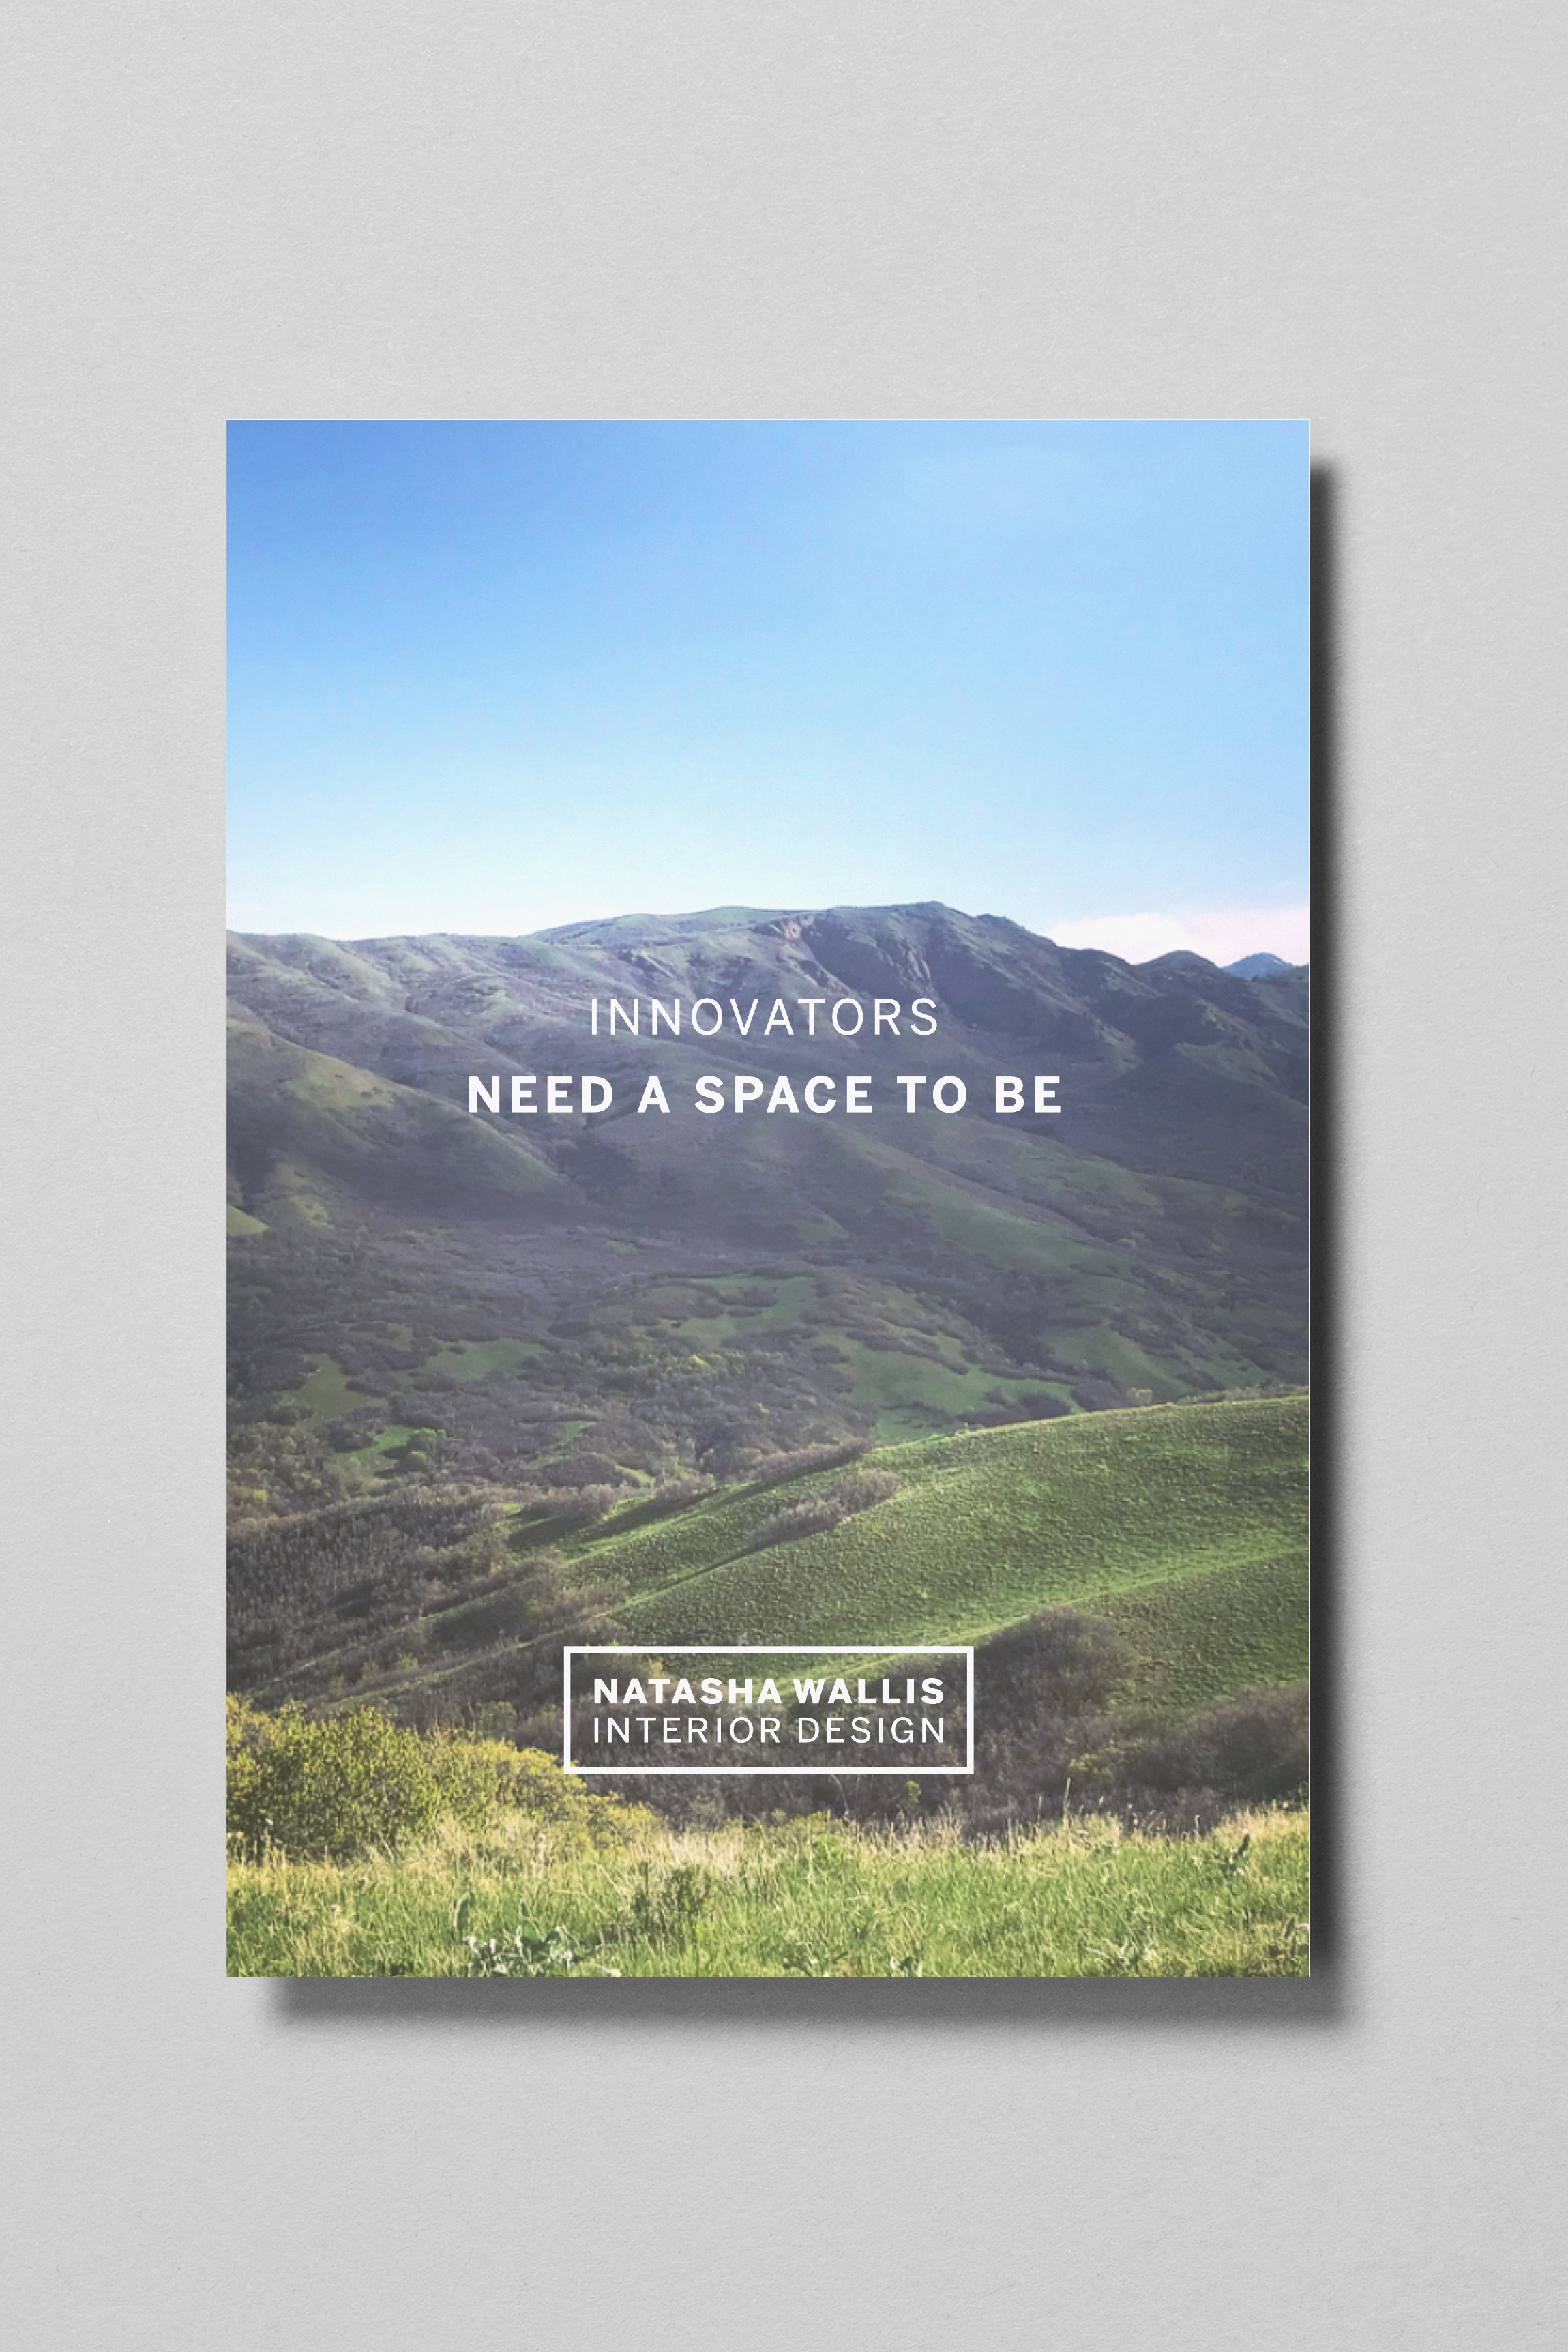 Innovators need a space to be.